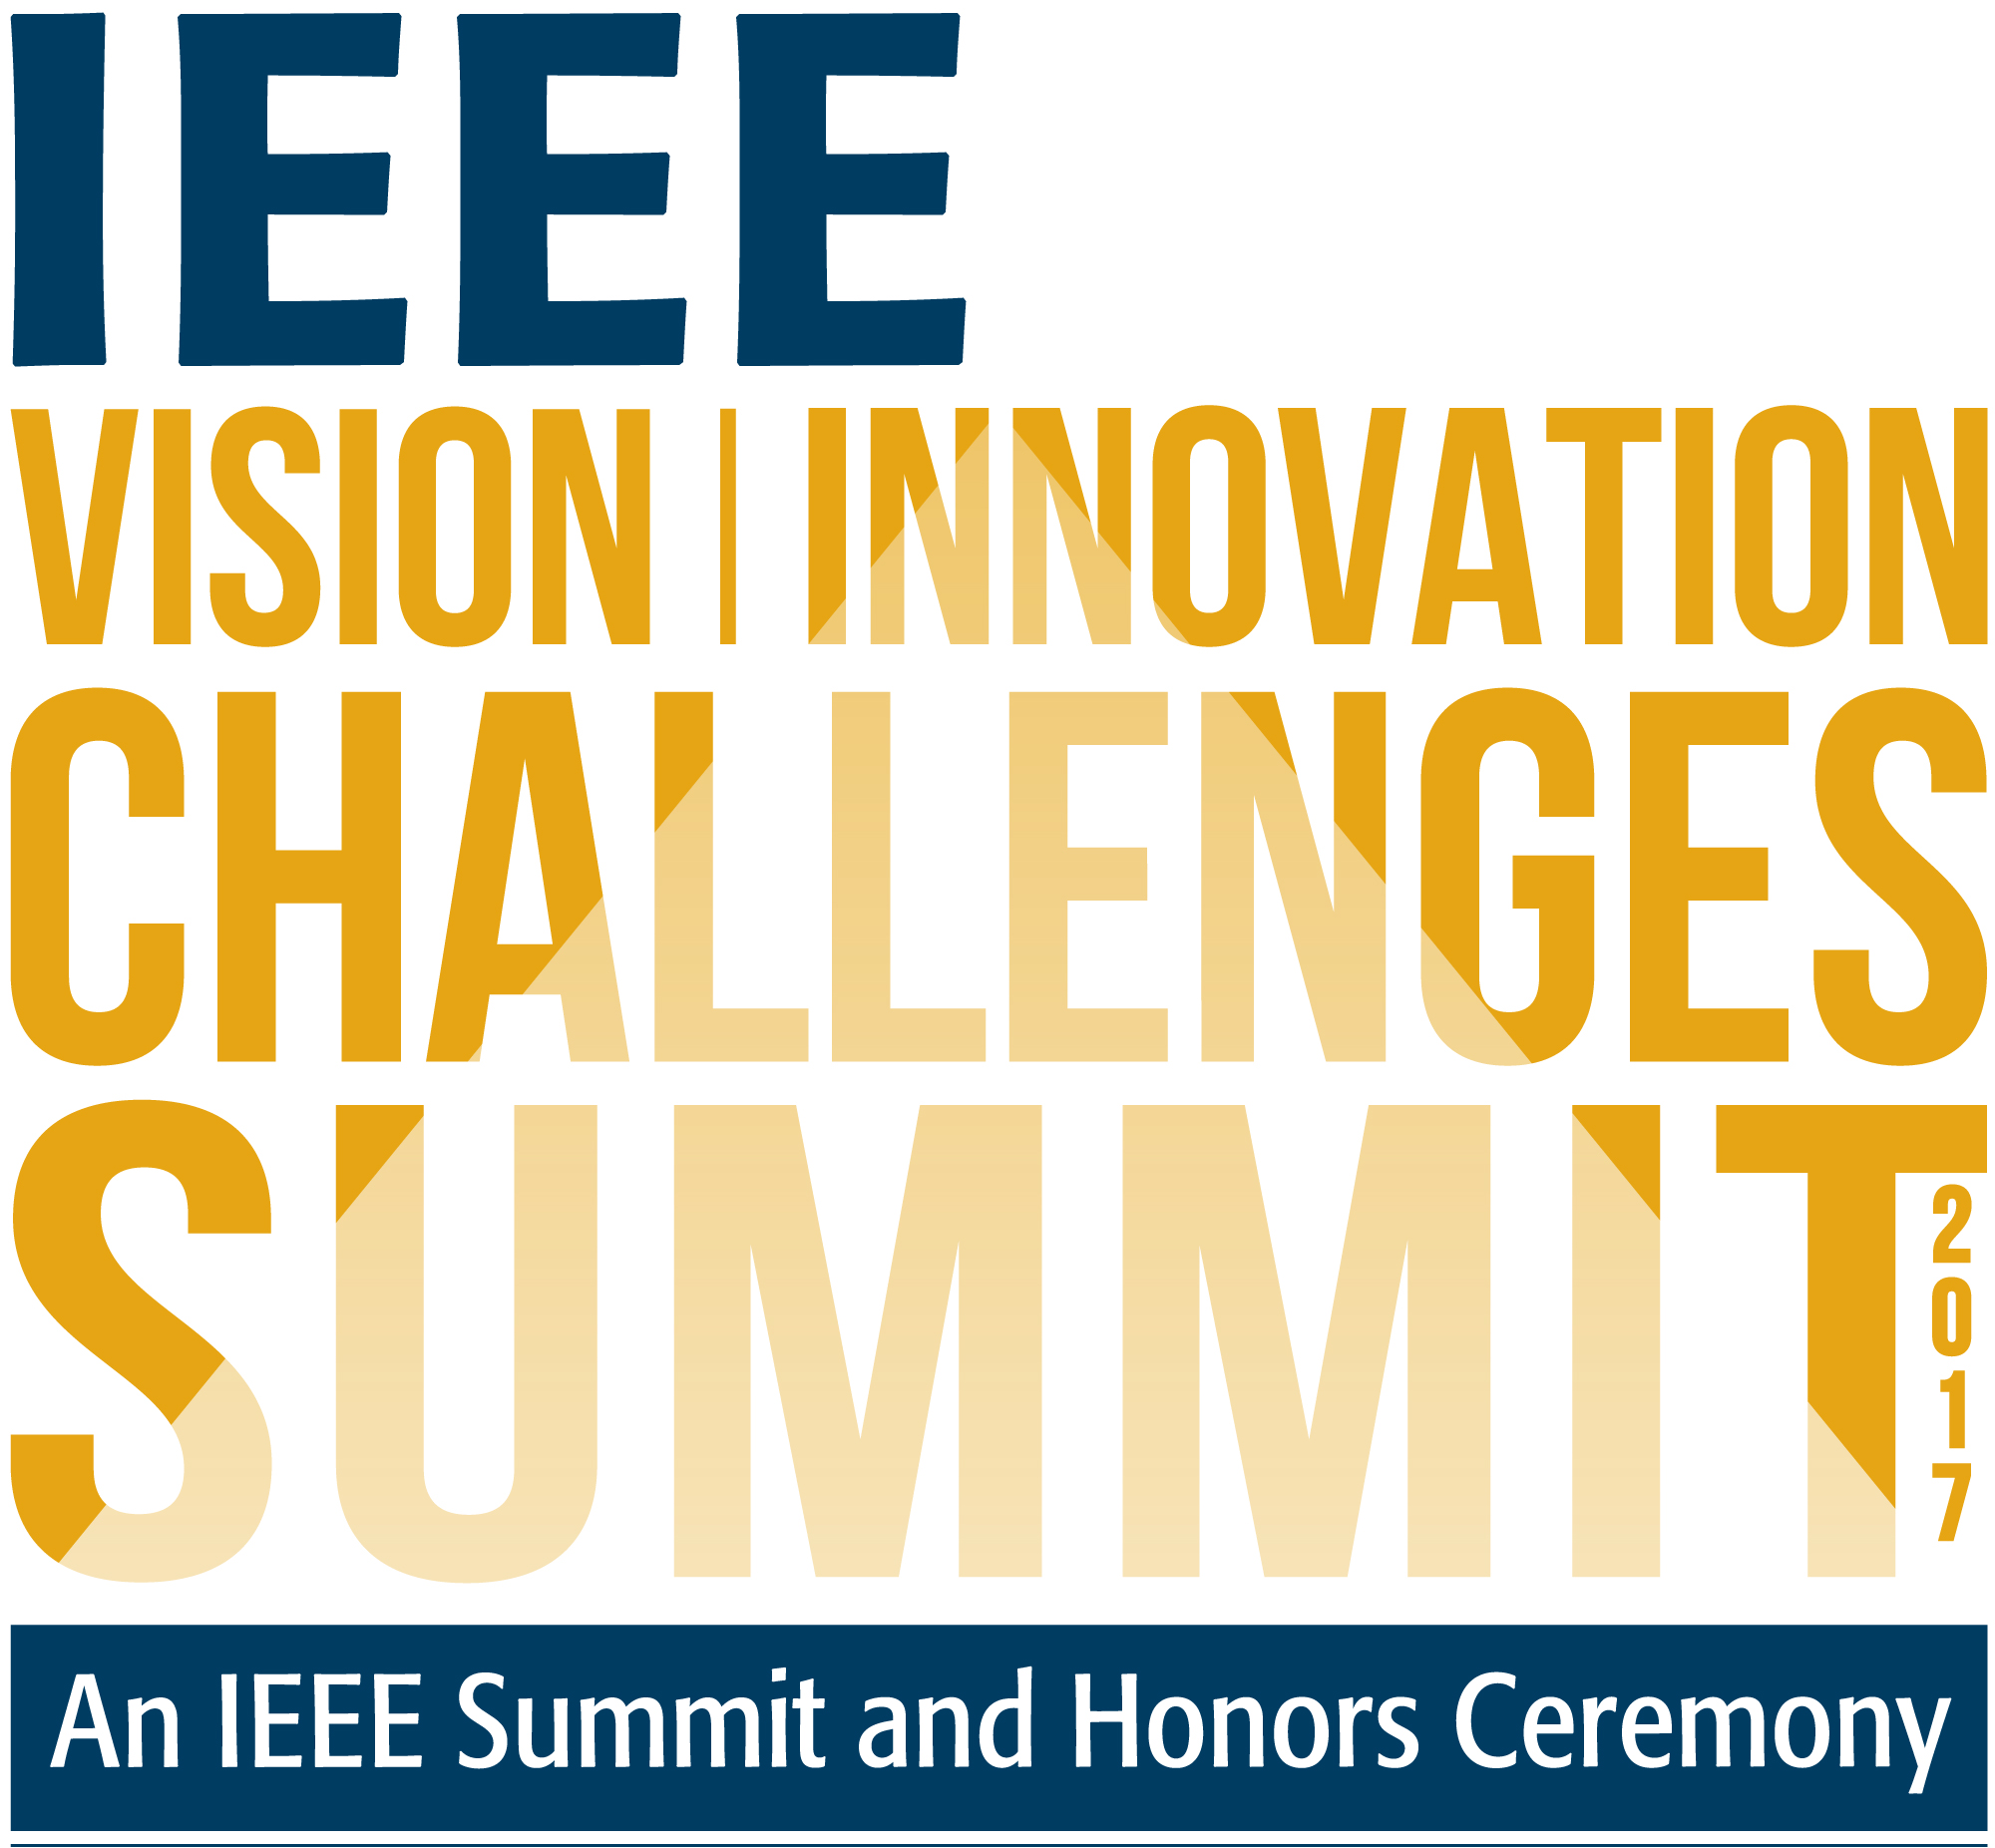 2017 IEEE Vision, Innovation, and Challenges Summit and Honors Ceremony logo